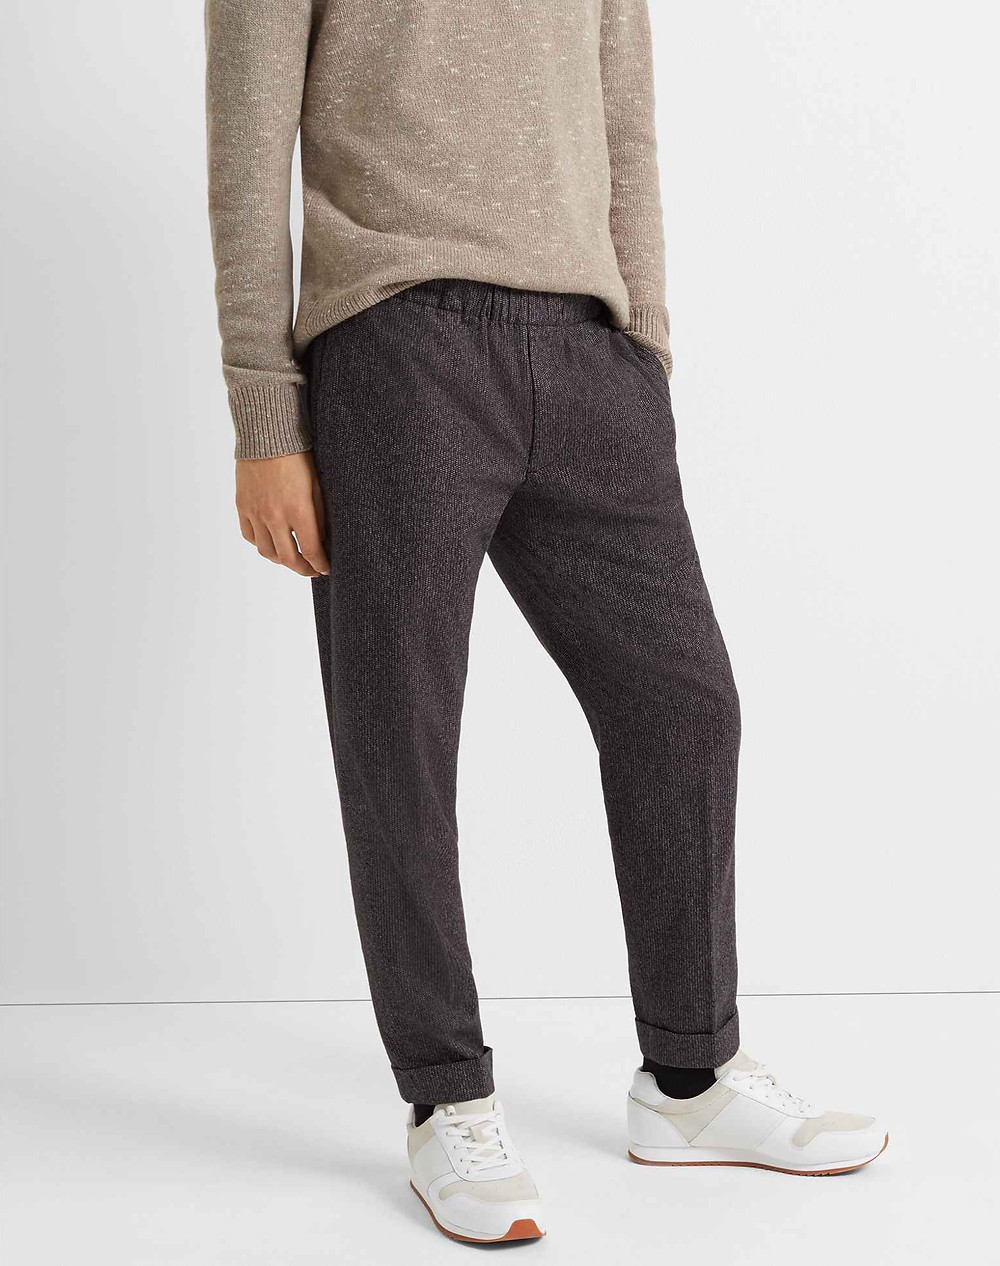 Club Monaco Elasticated Pull-On Pant